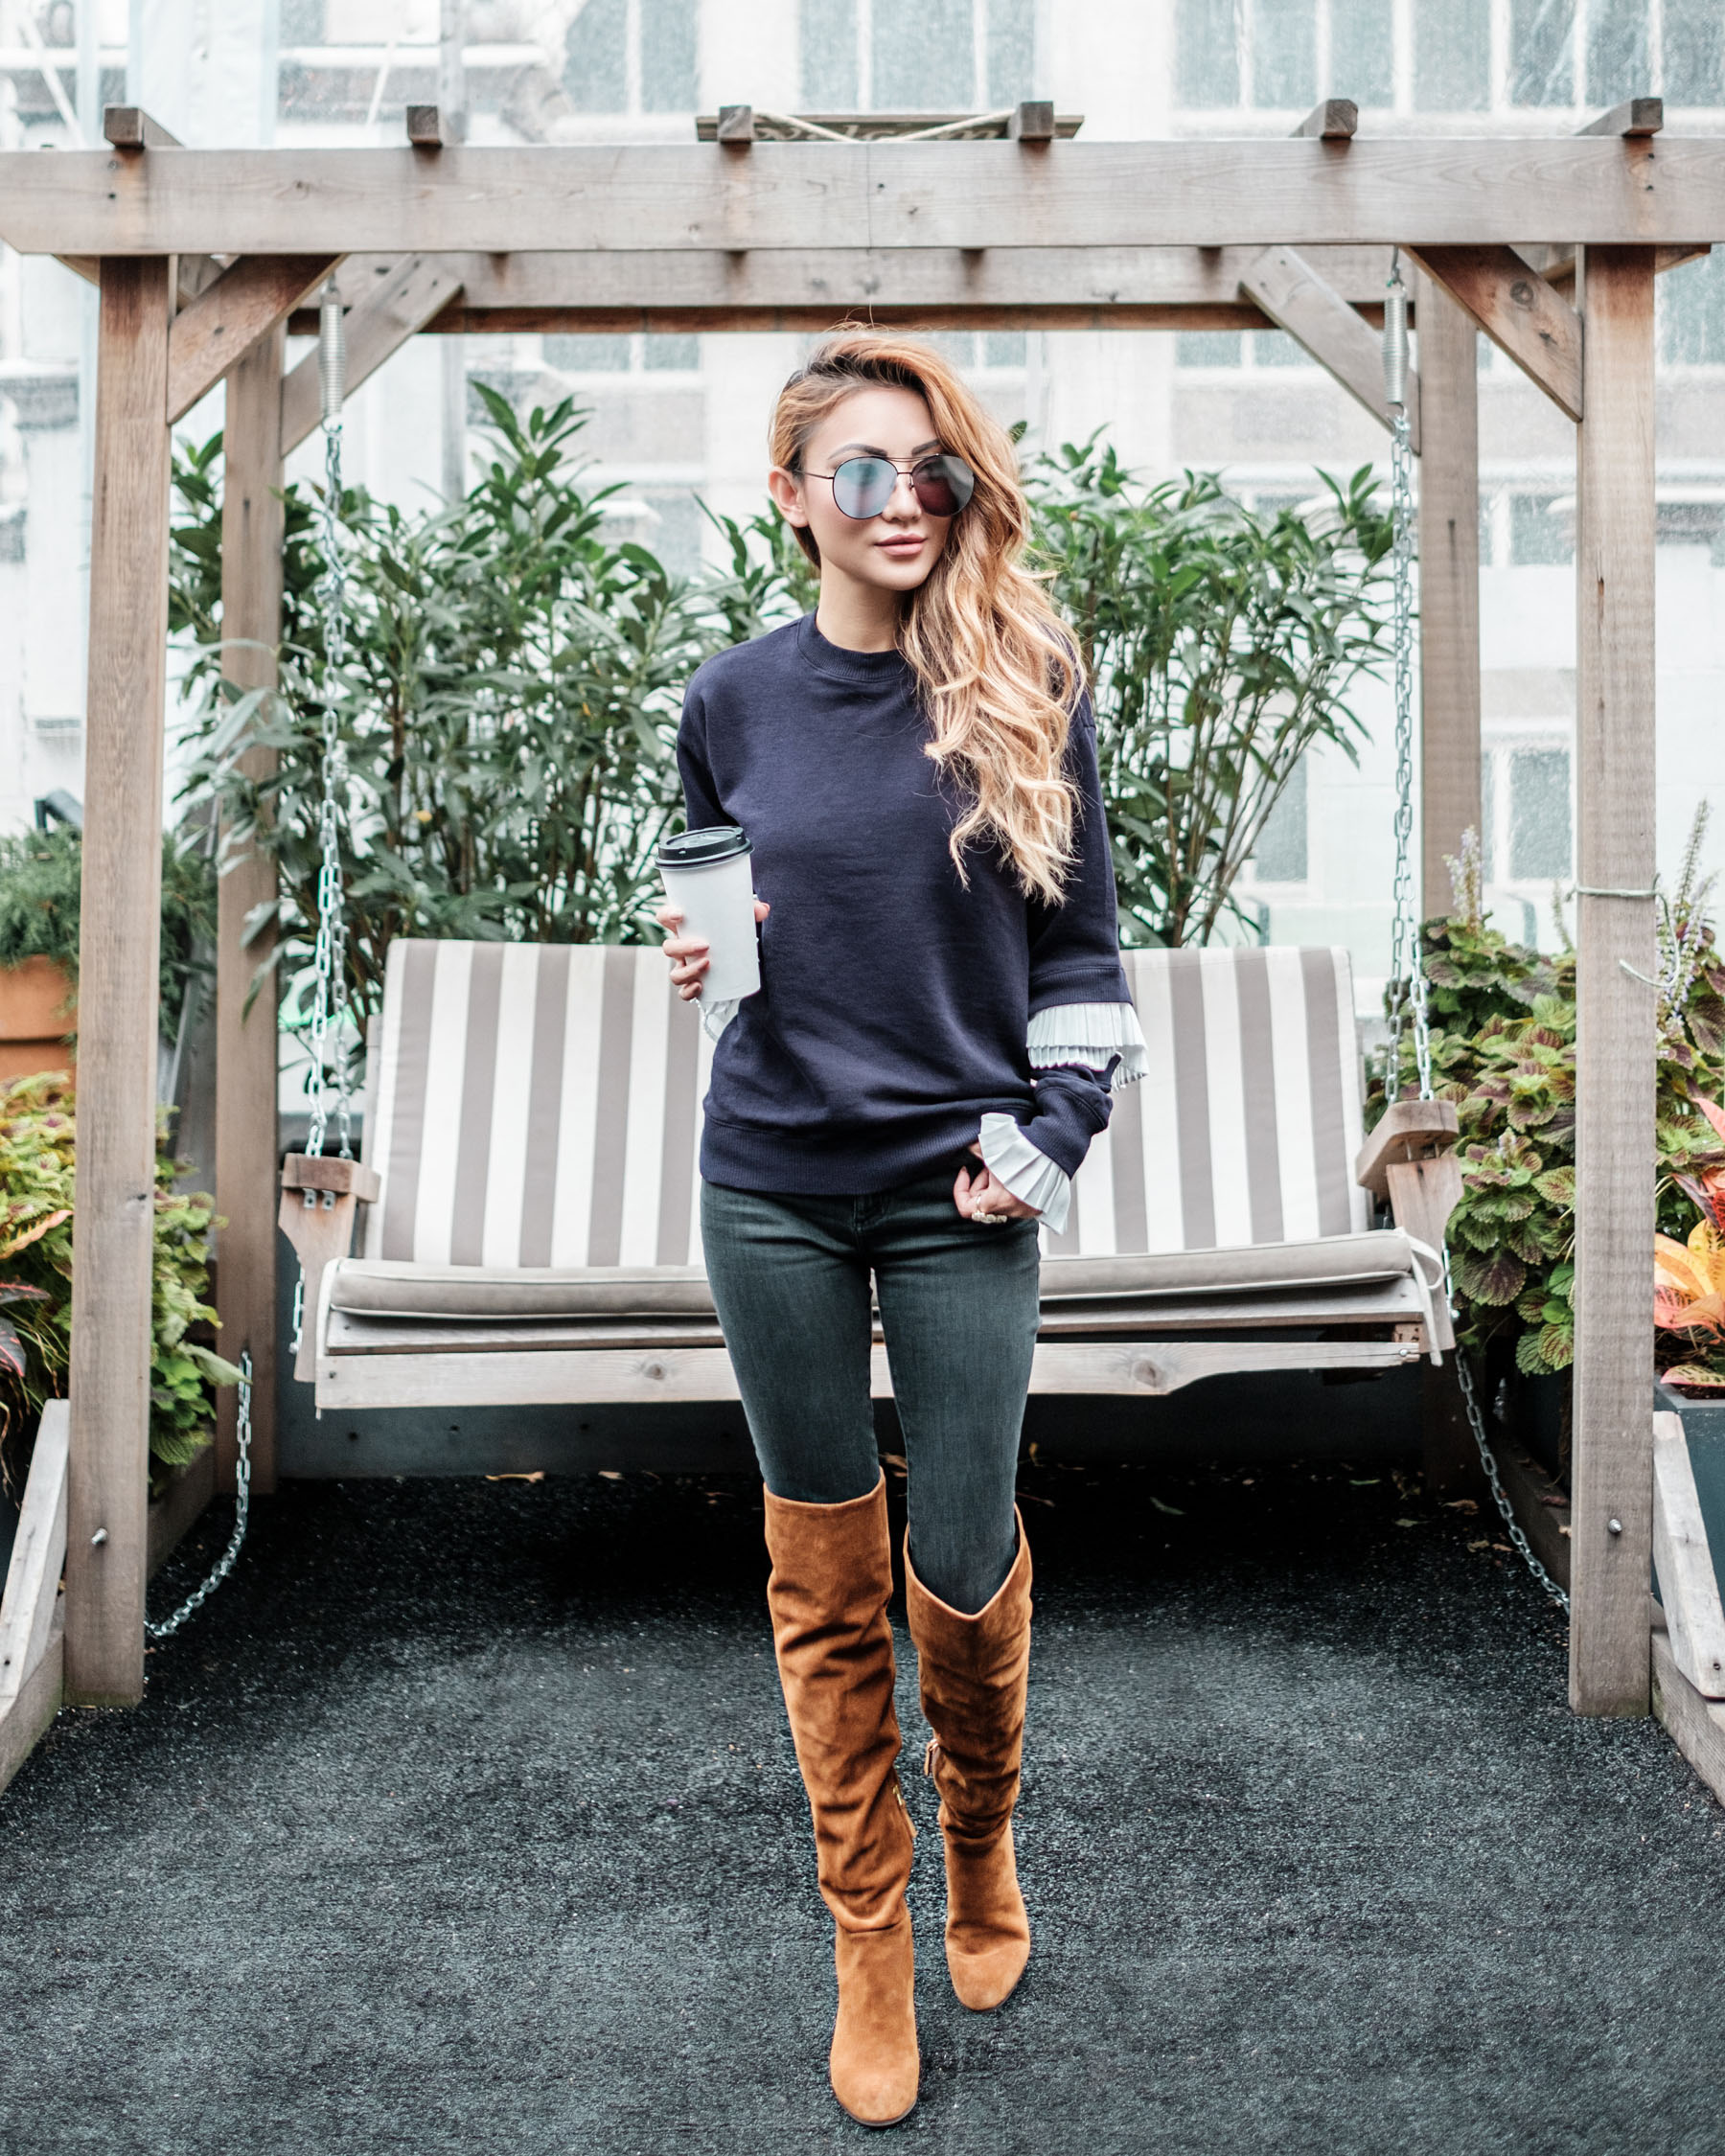 Boots For Fall Fashion // NotJessFashion.com